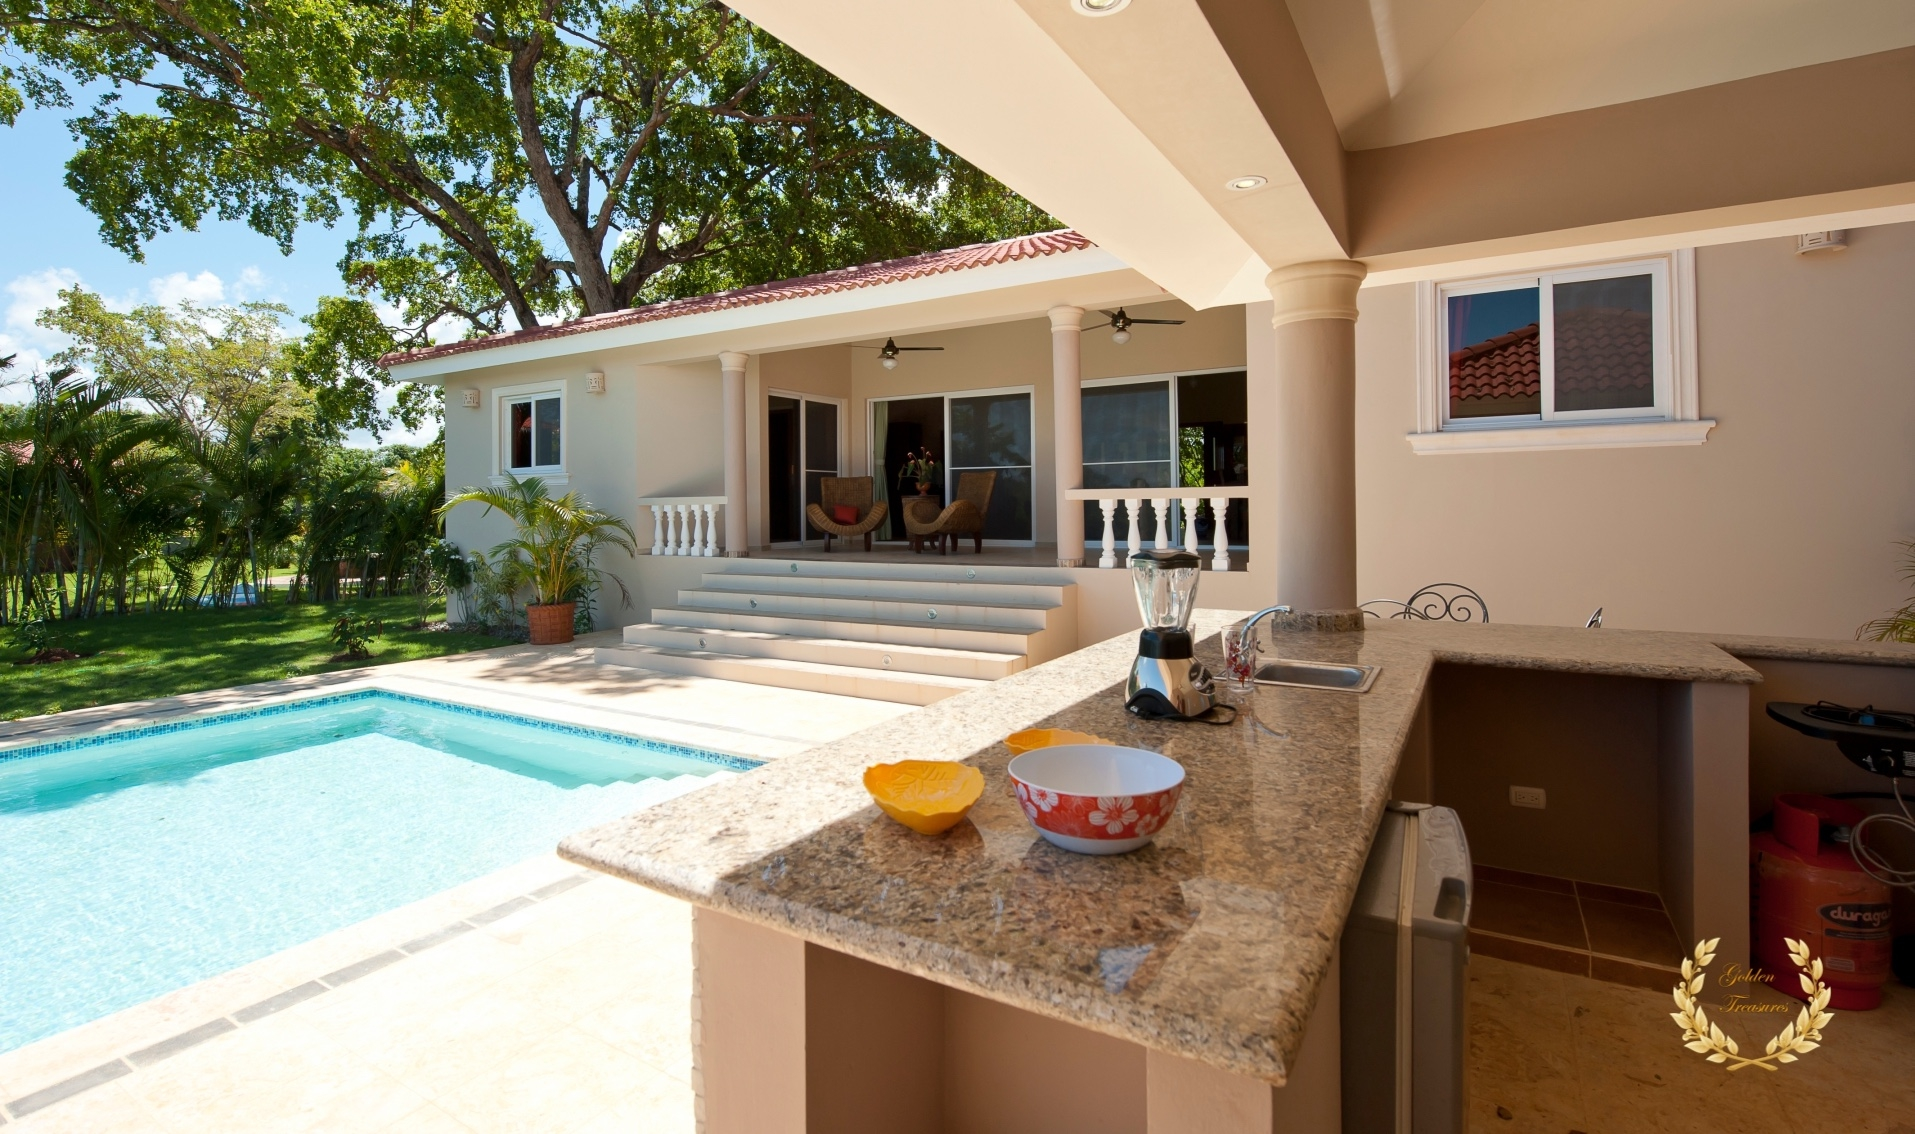 3 Bedroom Caribbean Lifestyle Villa For Sale in Sosua, DR